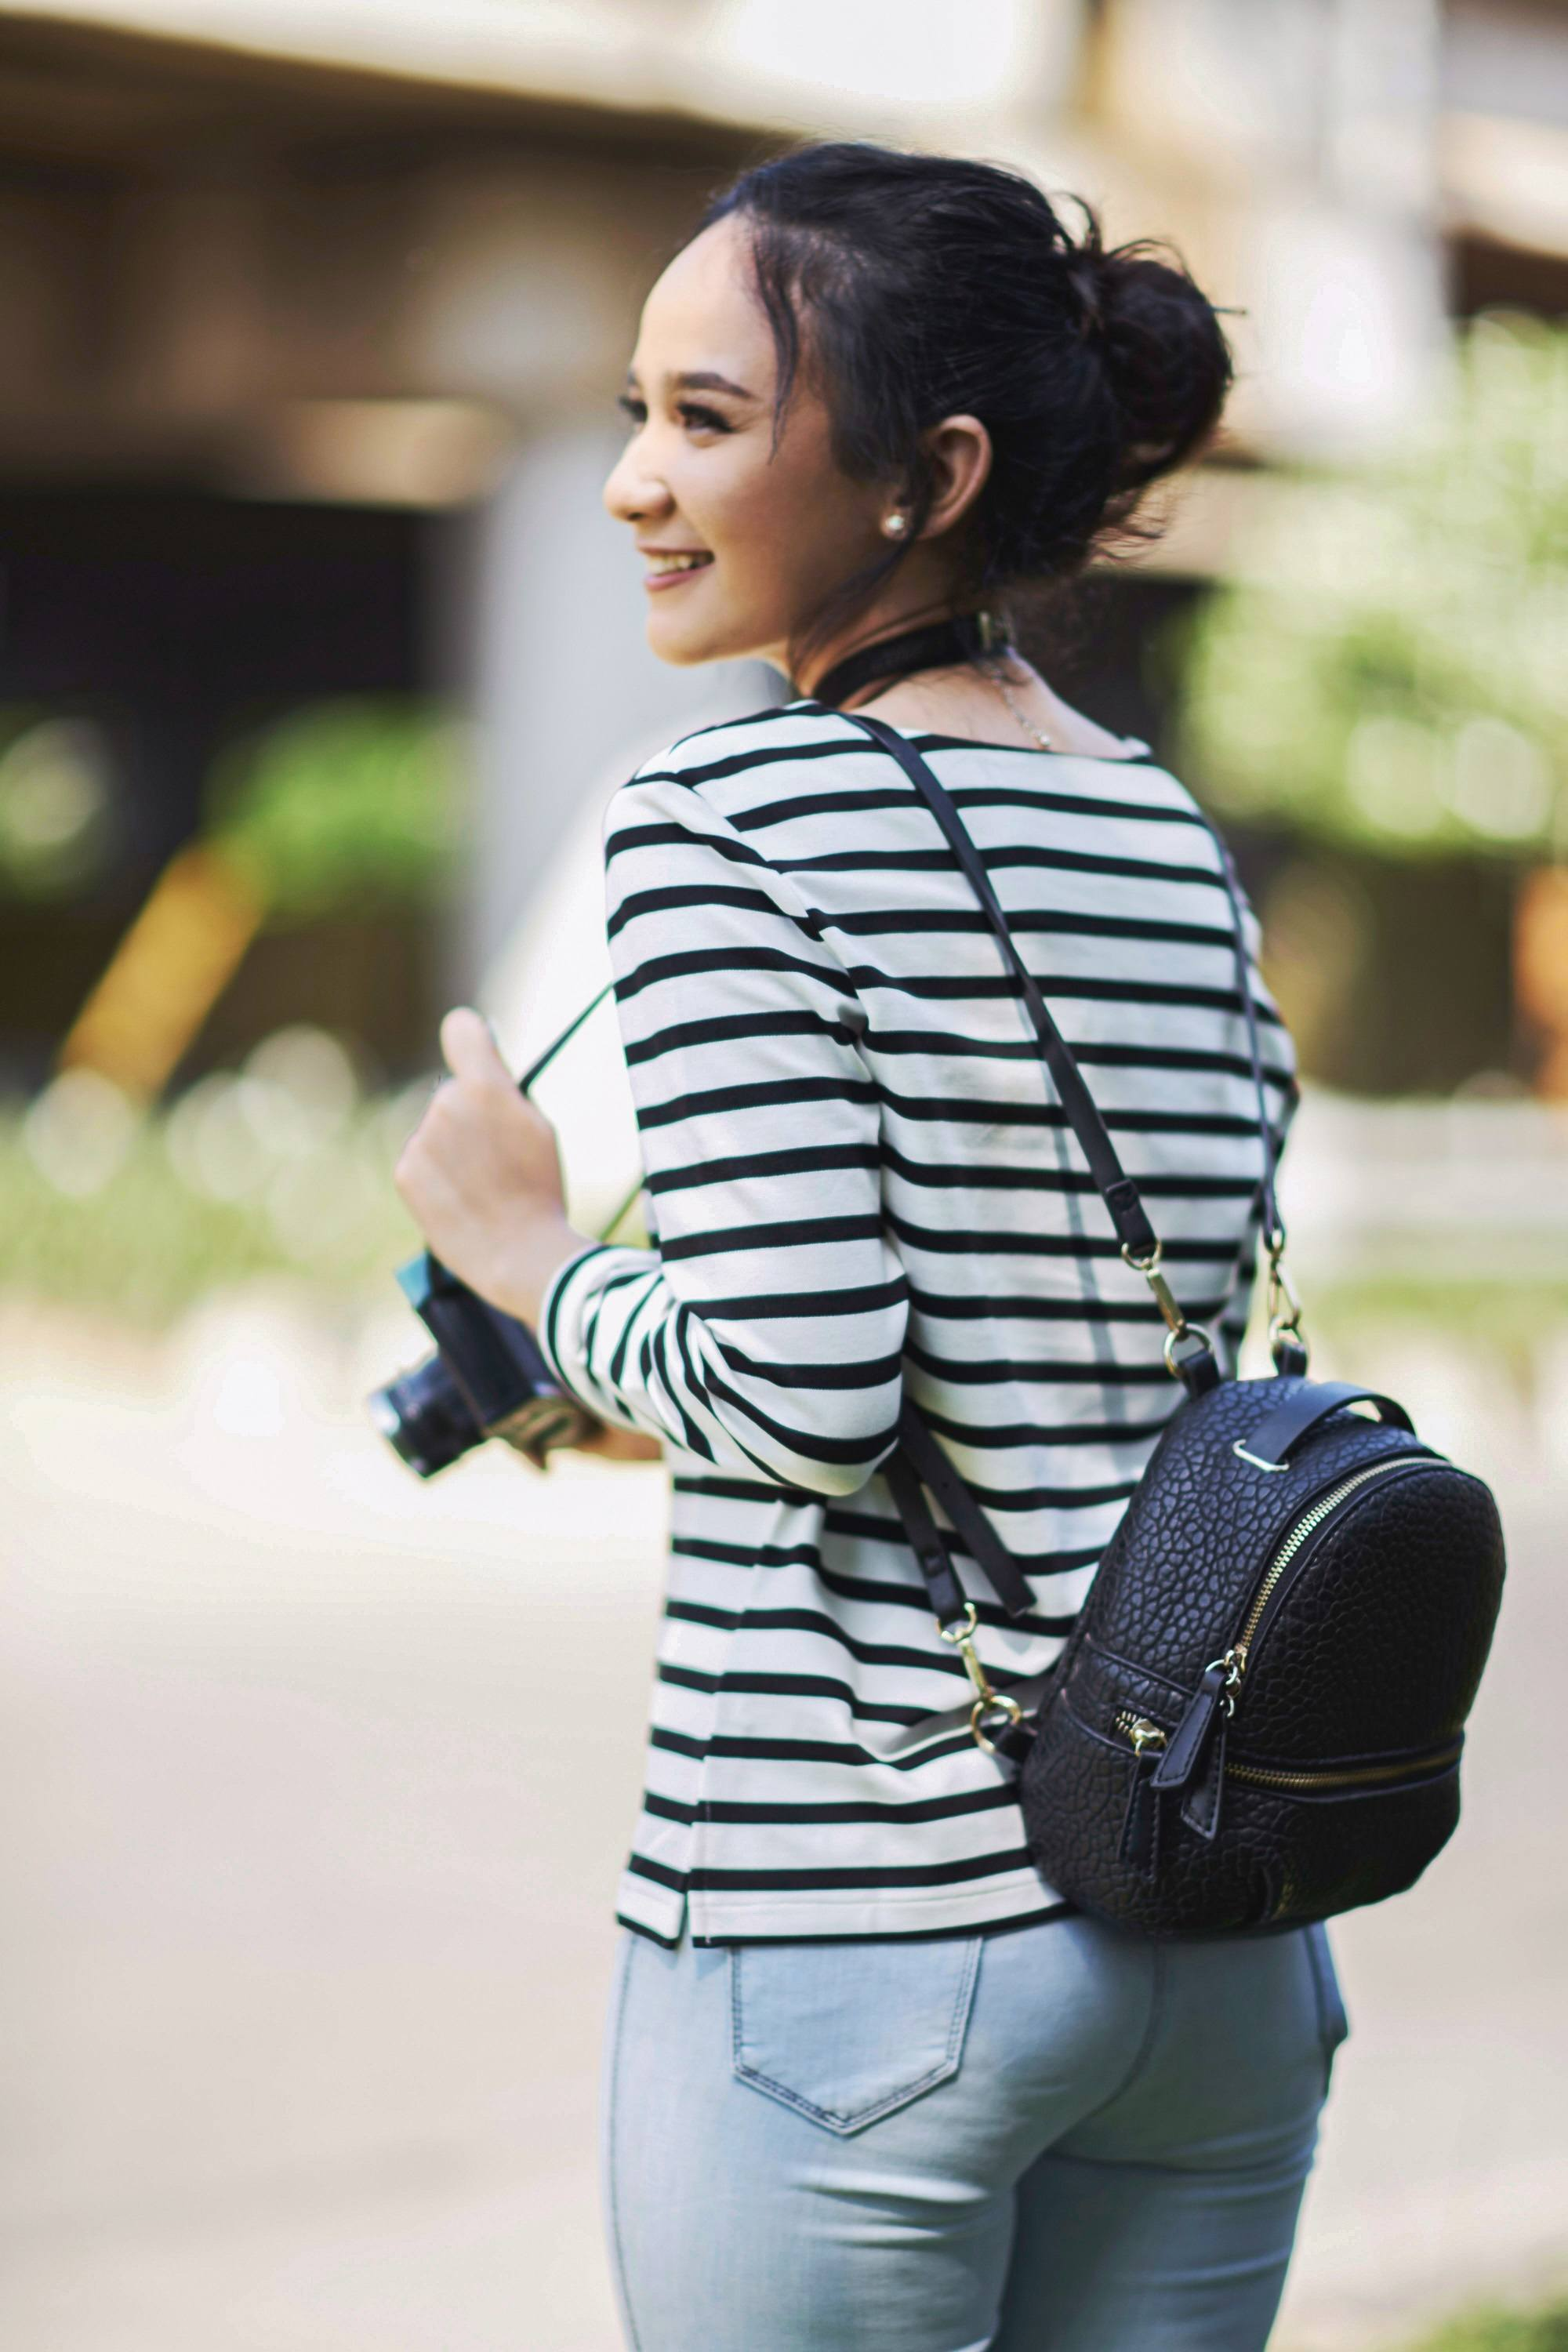 Updos for long hair: Asian girl with a messy bun hairstyle